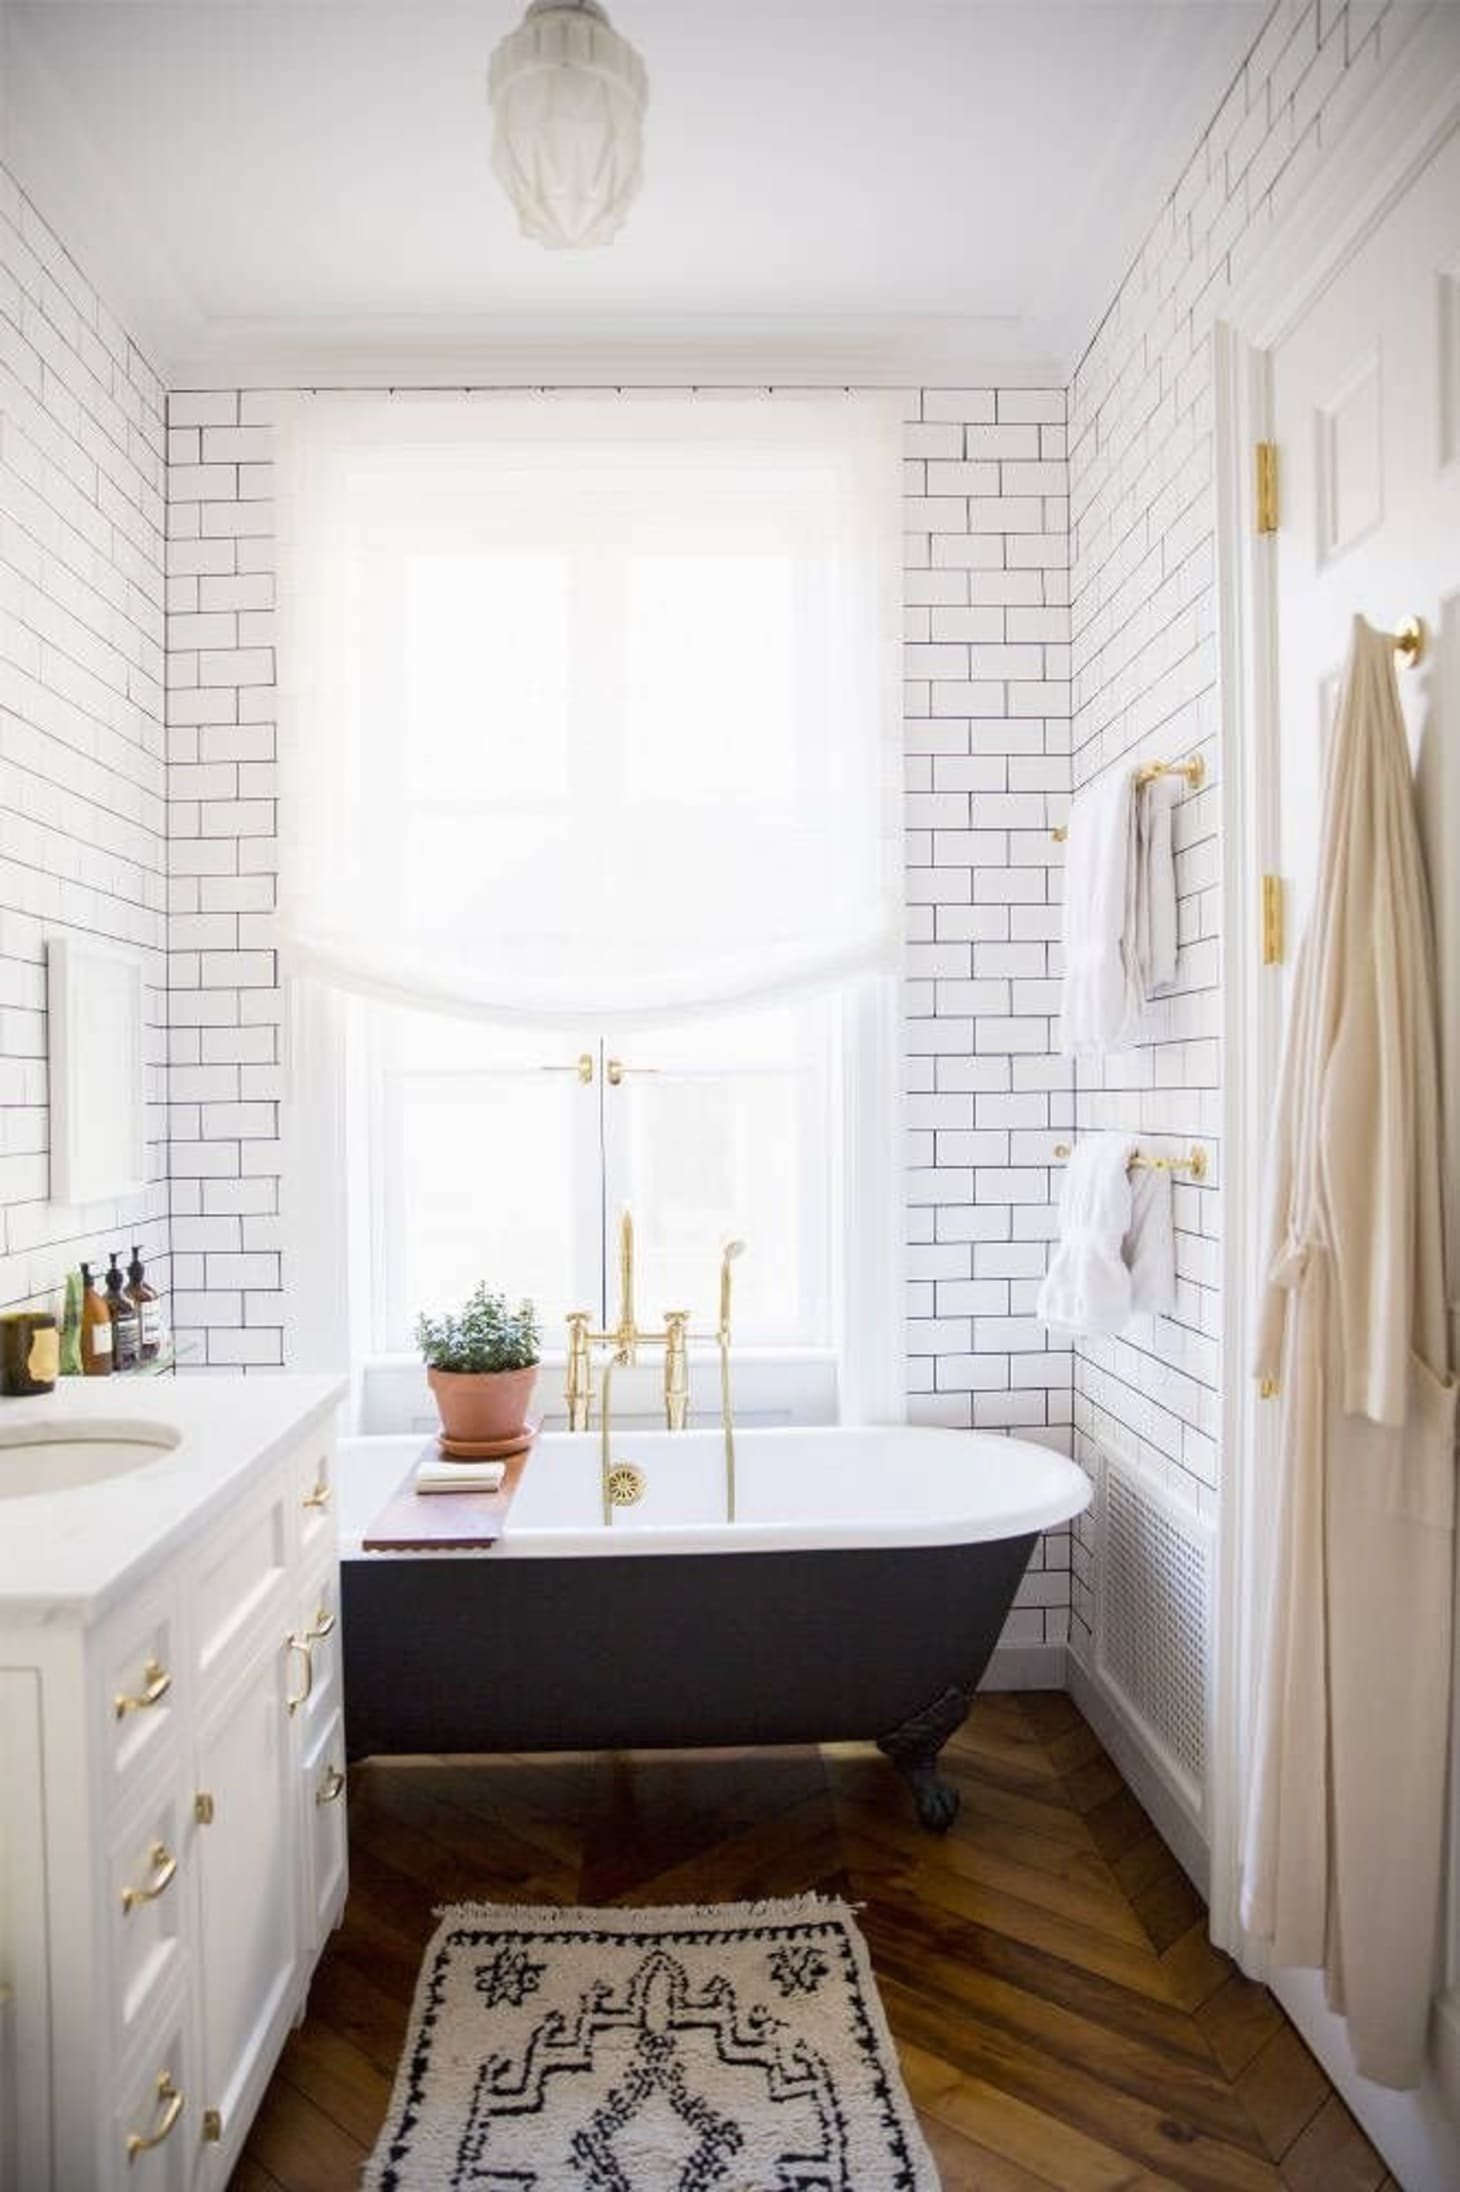 Black and White and Gold in the Bathroom | Apartment Therapy on white gold doors, white gold furniture, green bathroom, white gold photography, white gold beauty, white gold exterior, white gold bed, white gold car, white gold wedding, treasure island bathroom, white gold clothing, white gold room, white gold trap, white gold office, black bathroom, natural bathroom, pink bathroom, white gold closet, vintage bathroom,